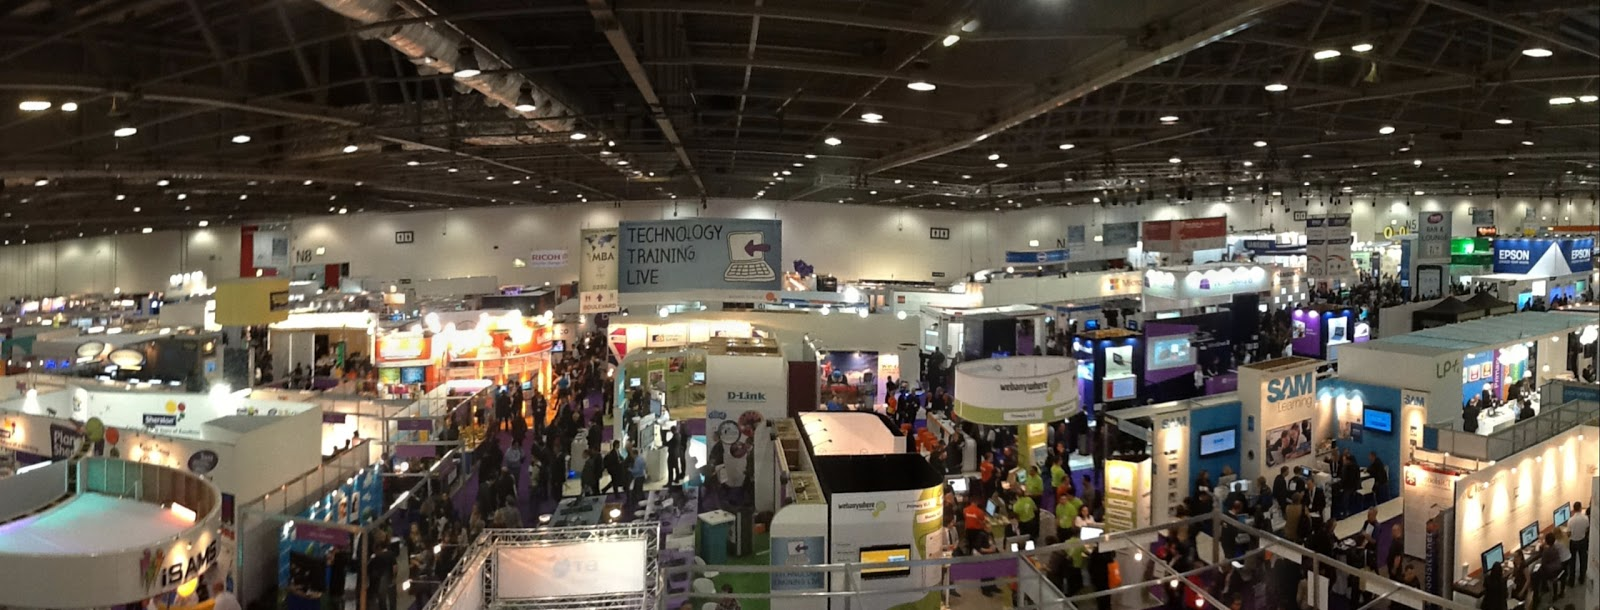 Excel Rooms London Agency